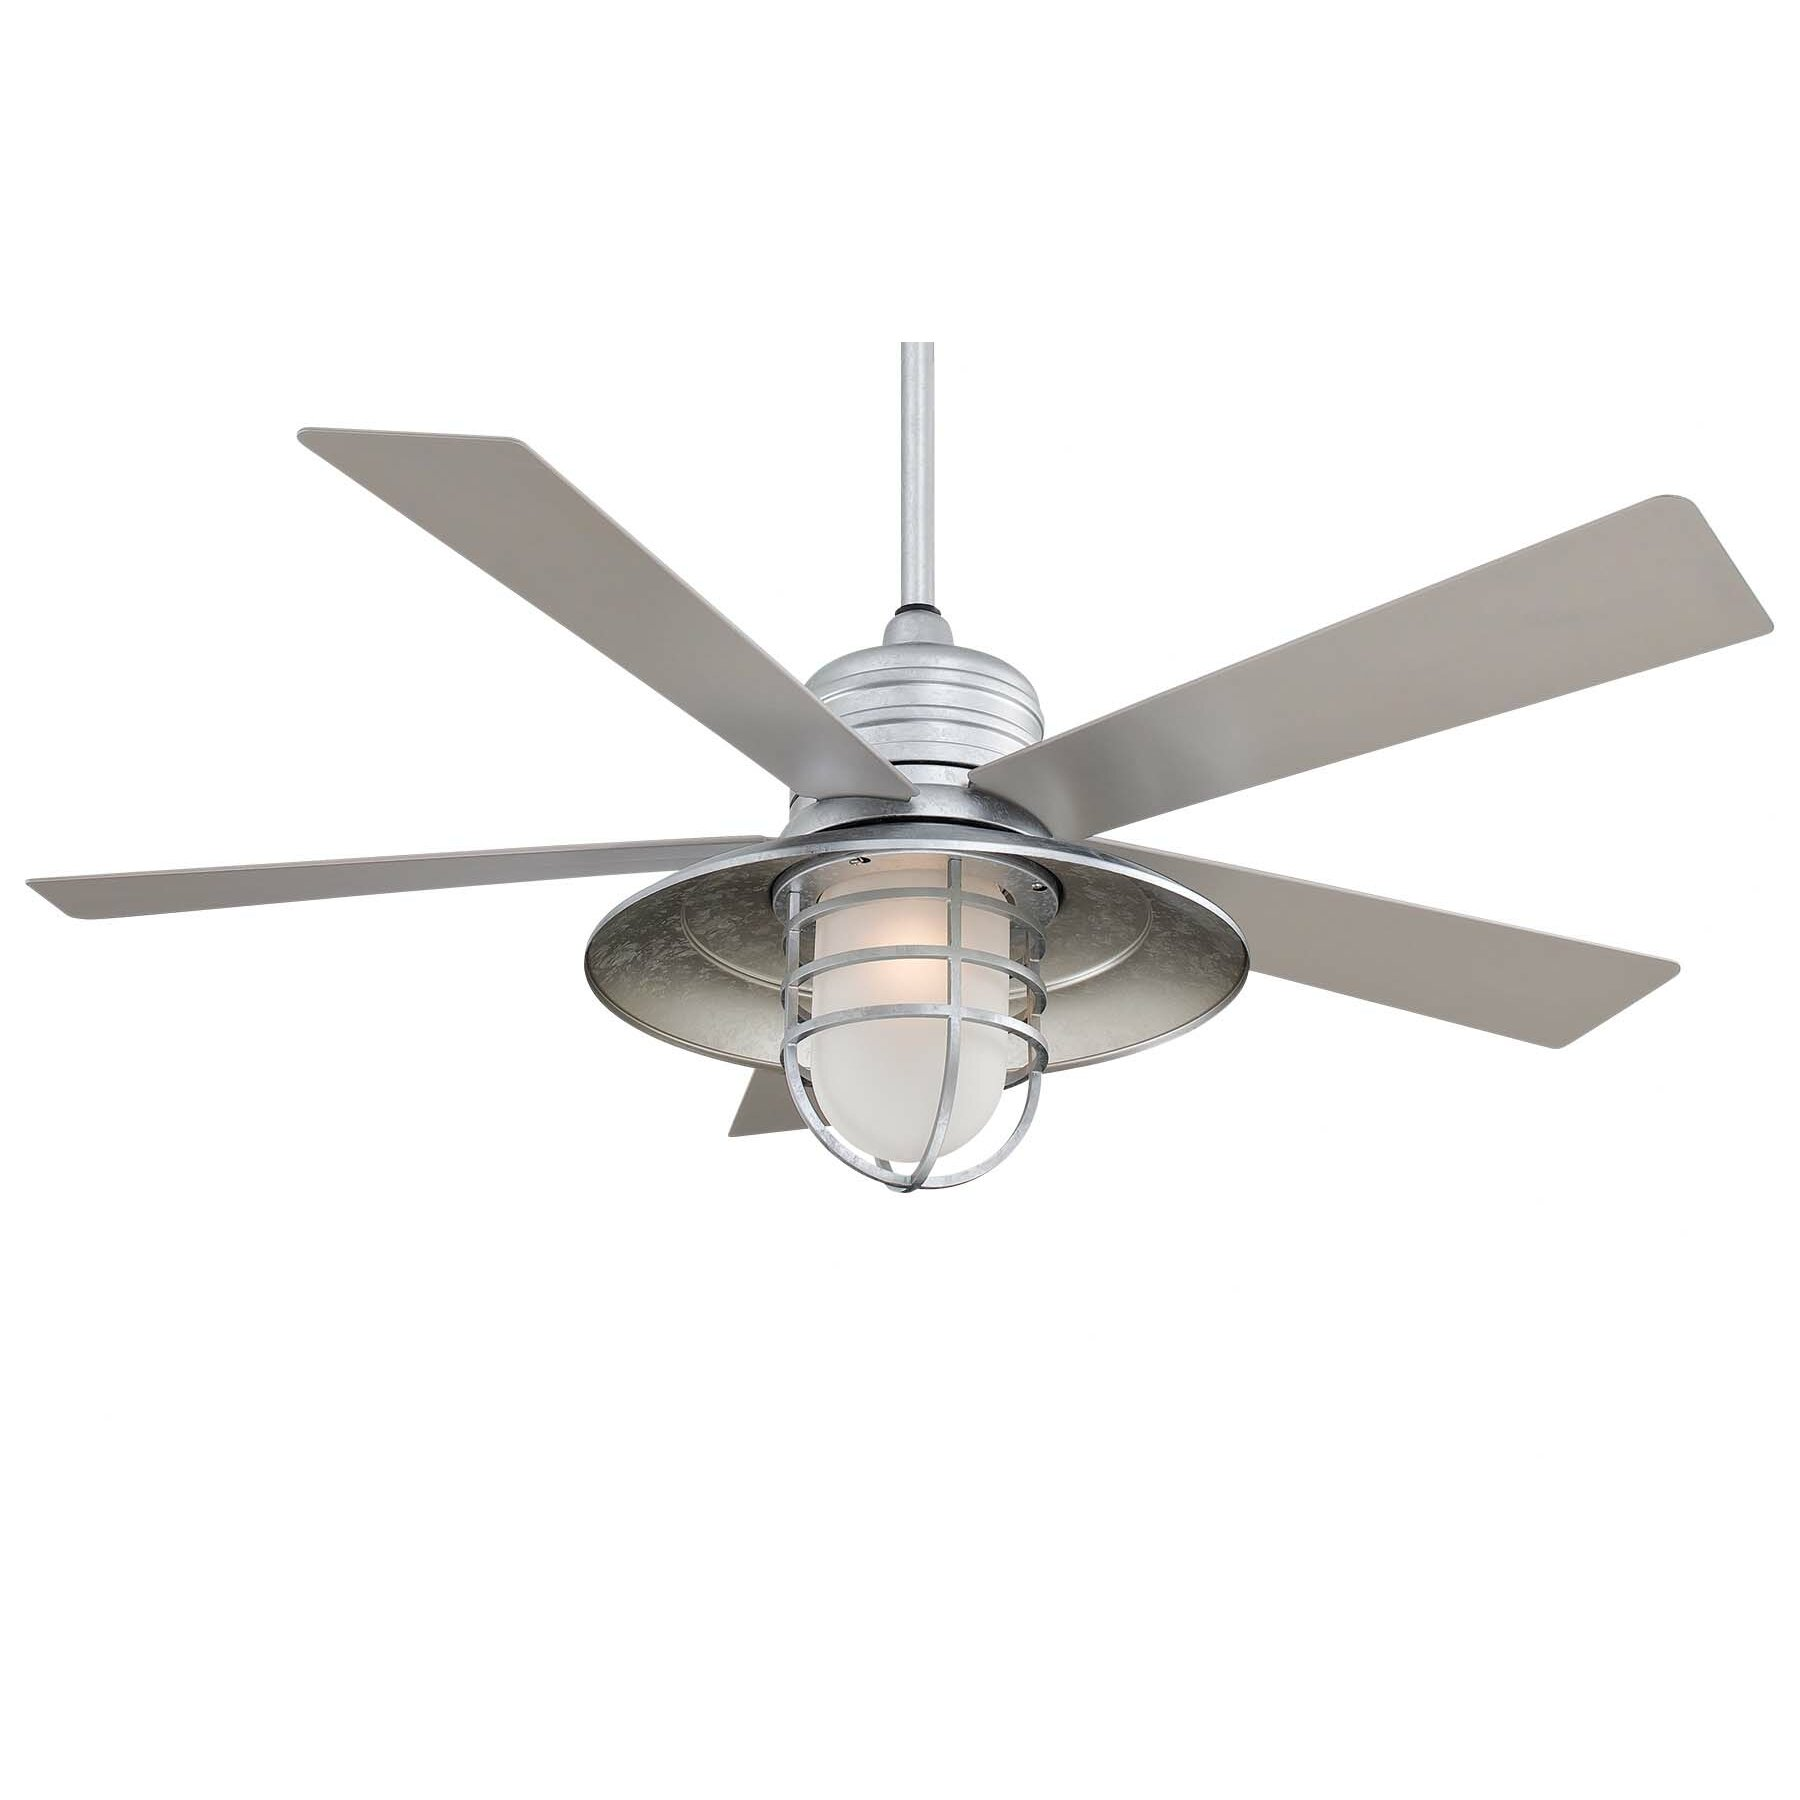 "Minka Aire 54"" RainMan 5 Blade Indoor Outdoor Ceiling"